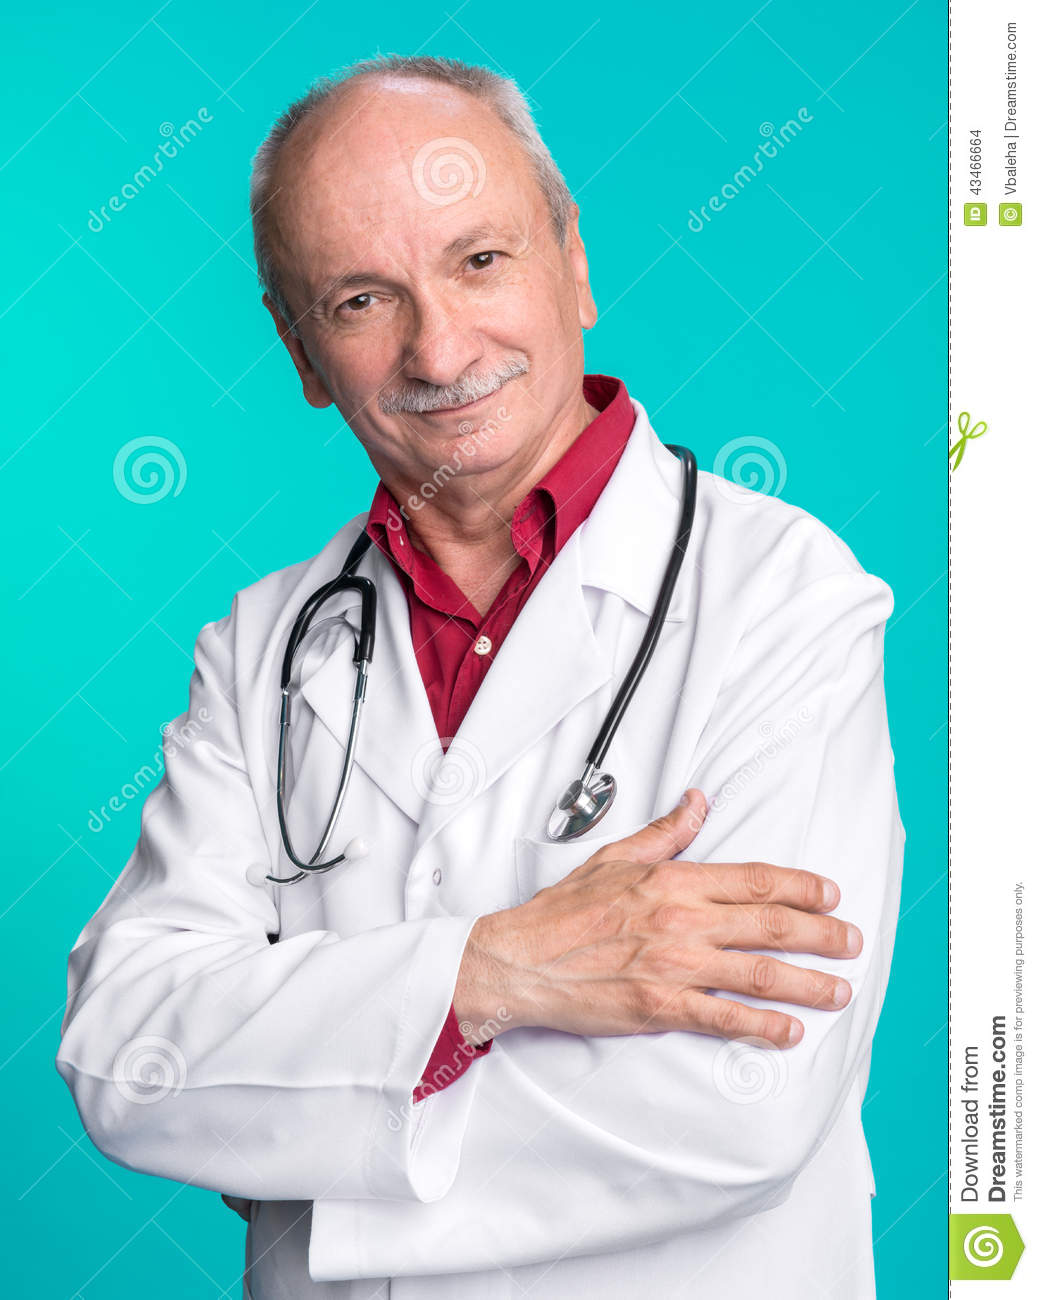 Smiling edical doctor with stethoscope